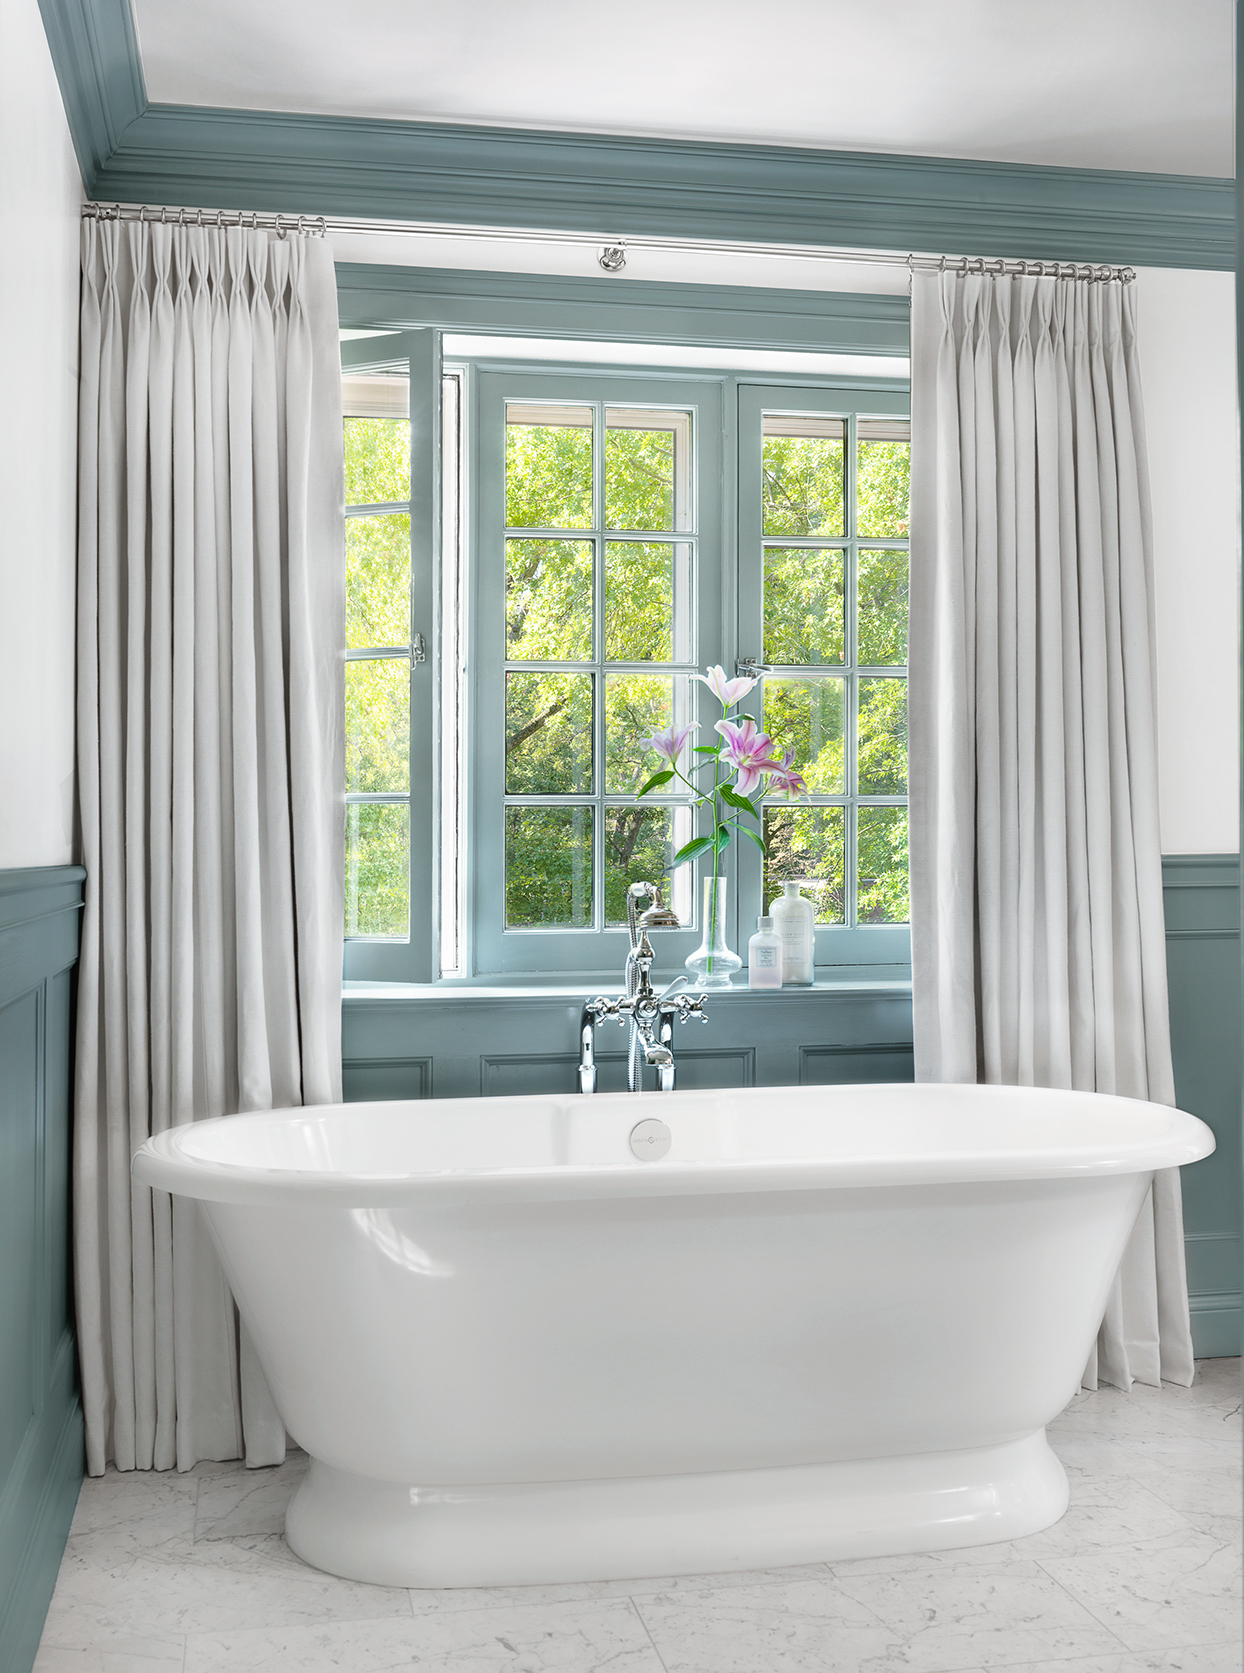 oval blue room master bath tub in front of window